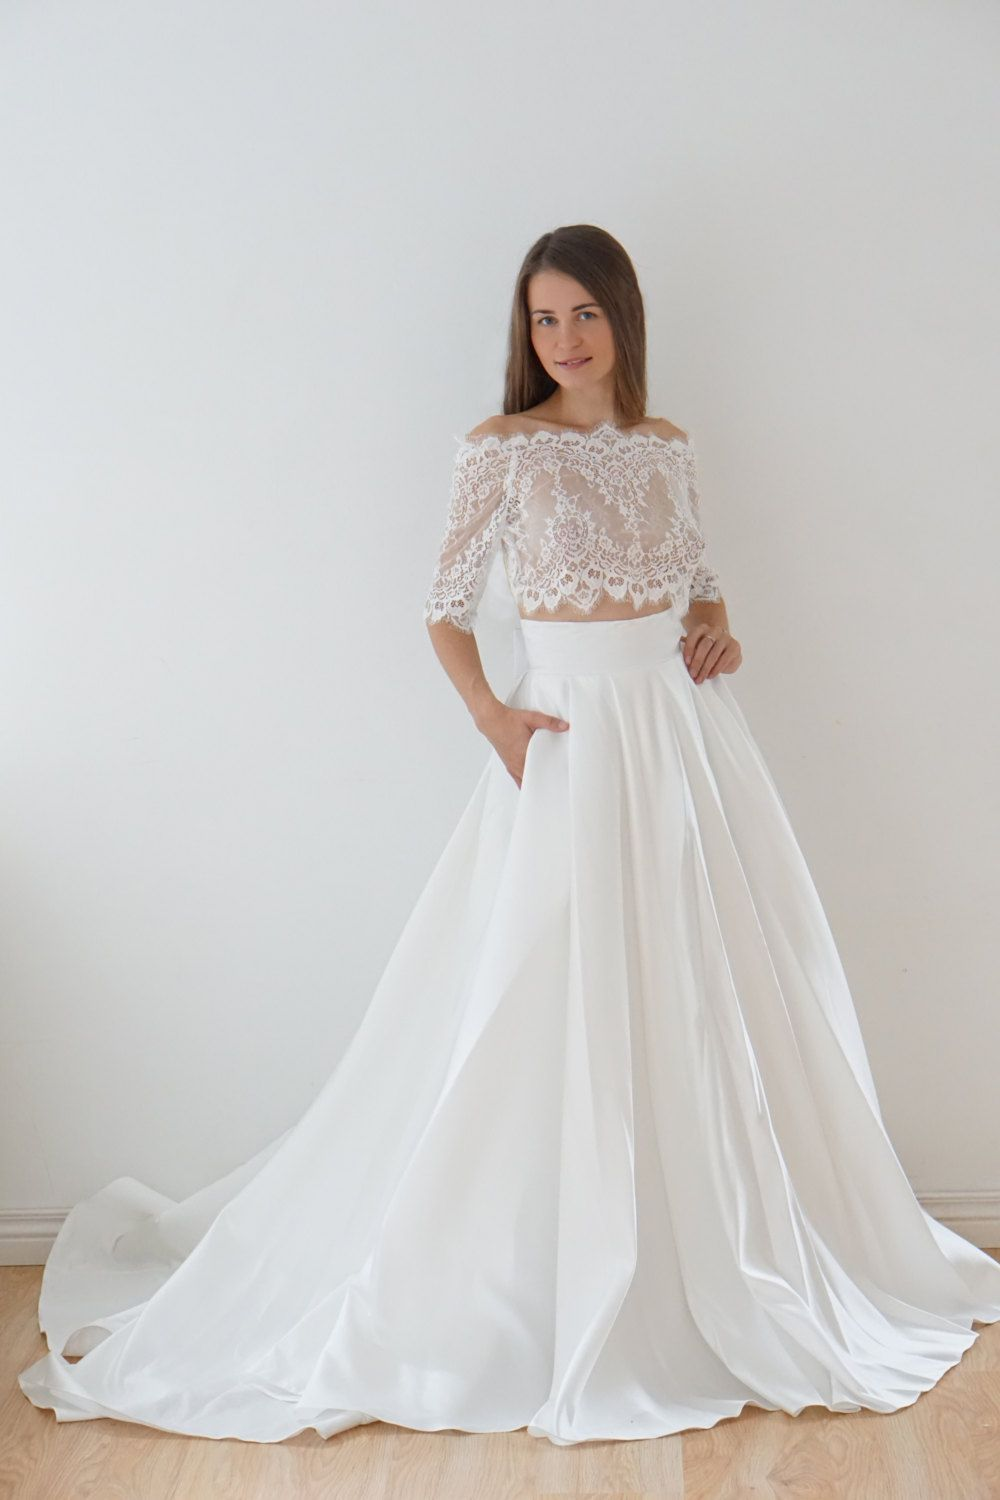 Lace tops for Wedding Dresses - Dresses for Guest at Wedding Check ...